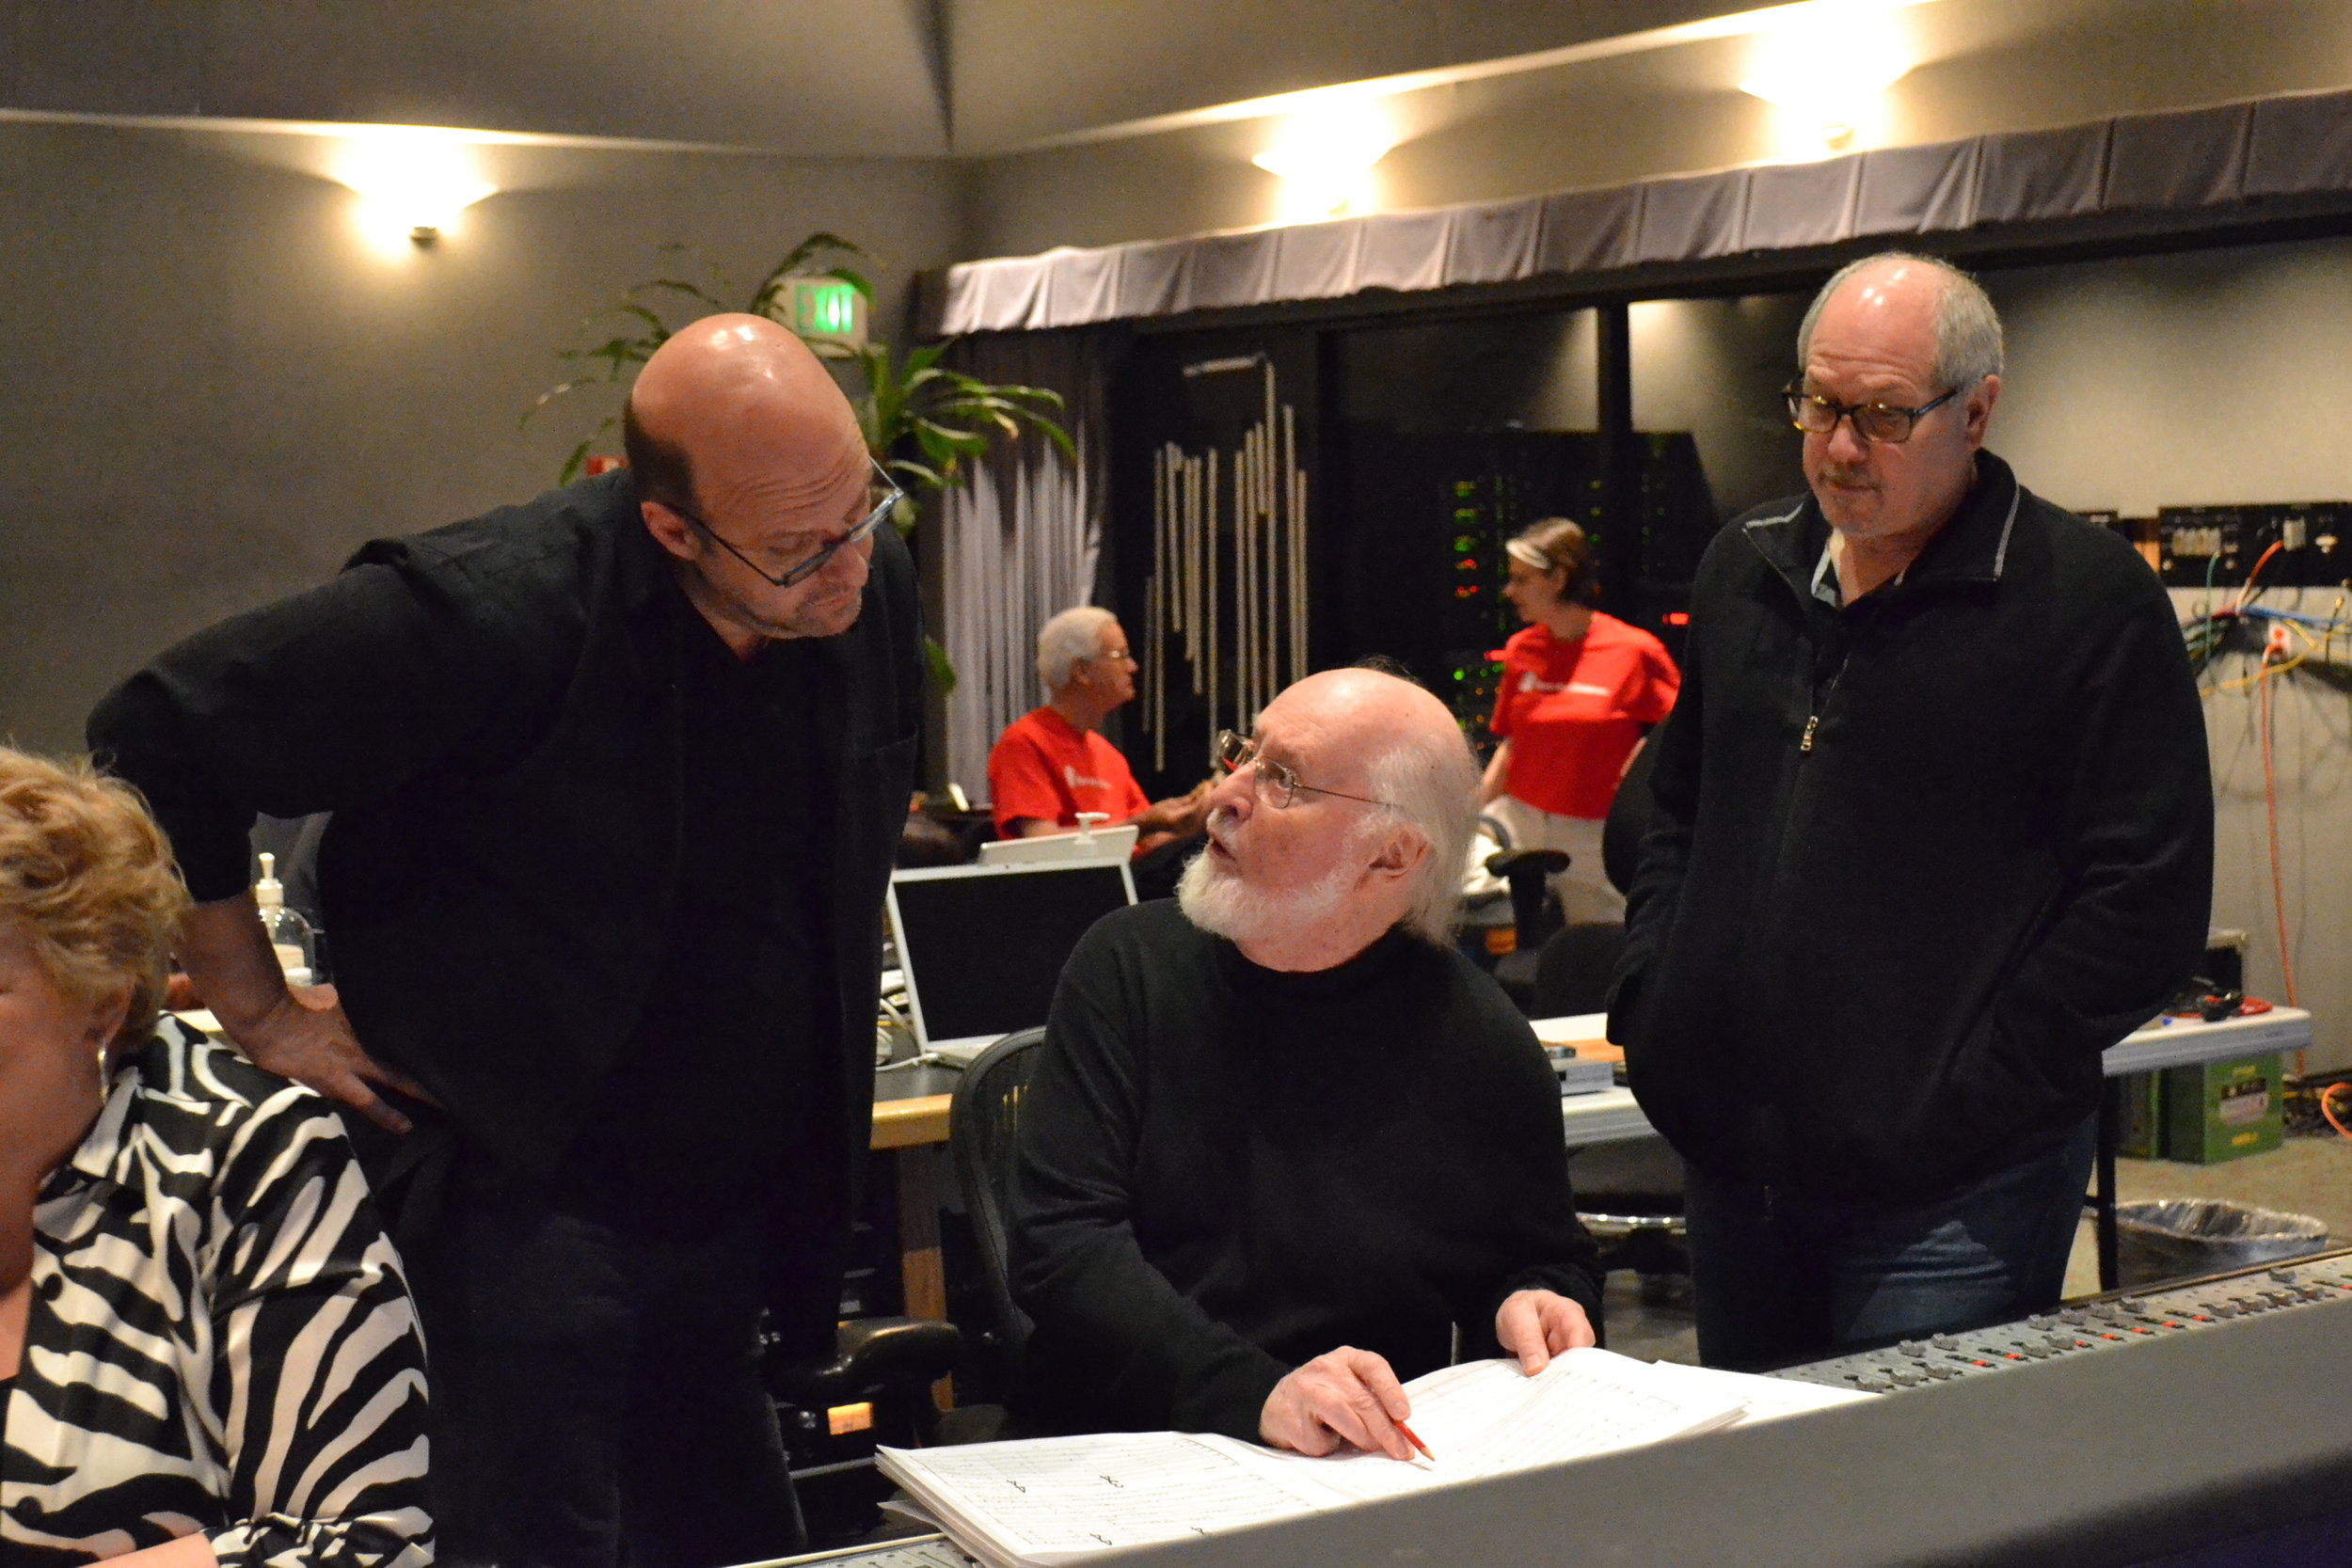 Arranger and pianist Randy Kerber discusses the score with conductor John Williams and mixer Dennis Sands.